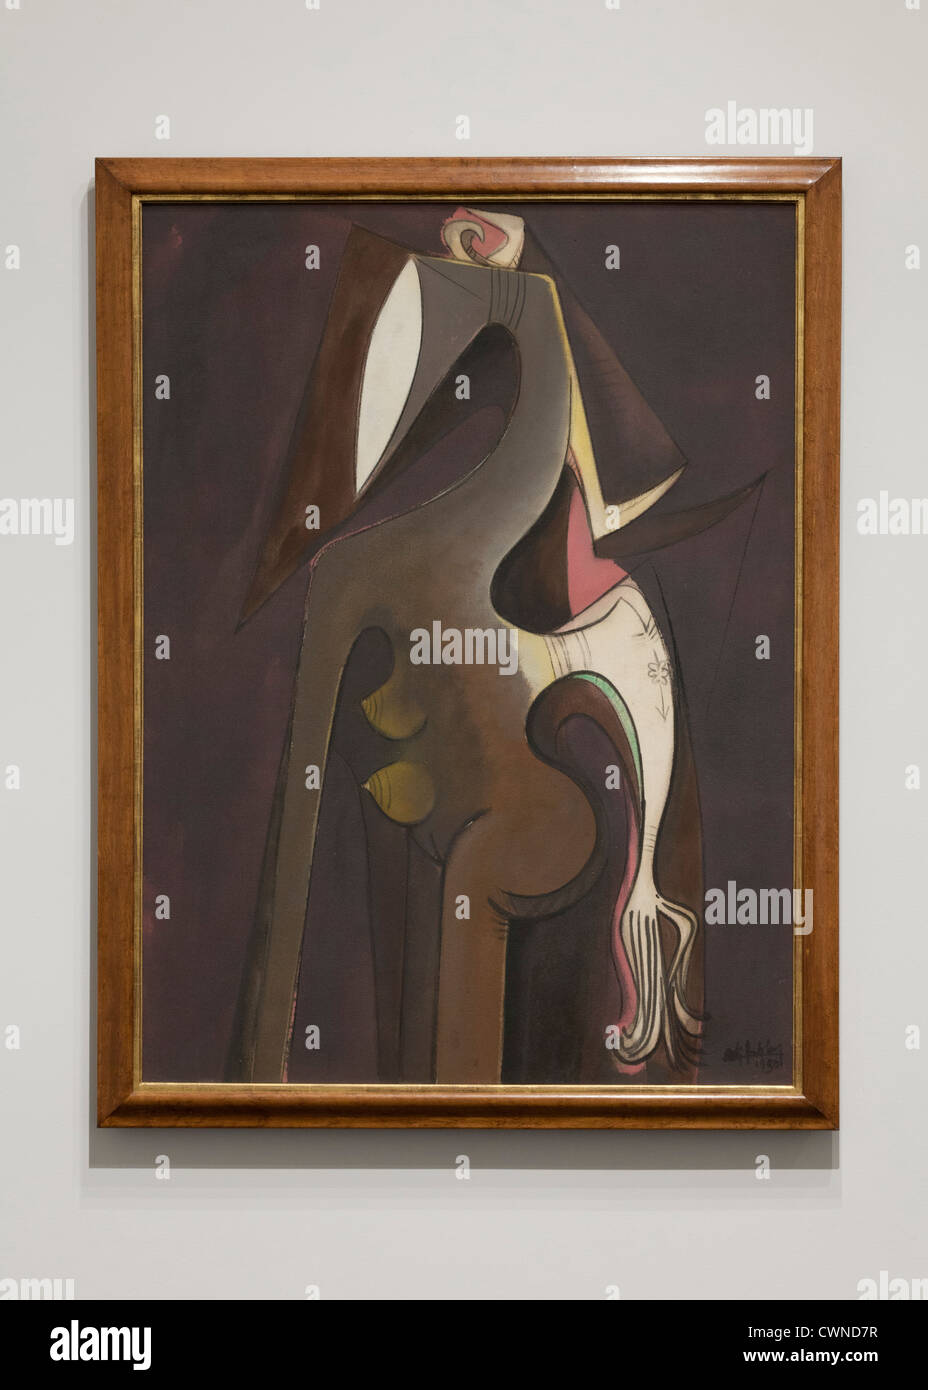 'Siren of the Niger' by Wilfredo Lam, 1950 - Stock Image